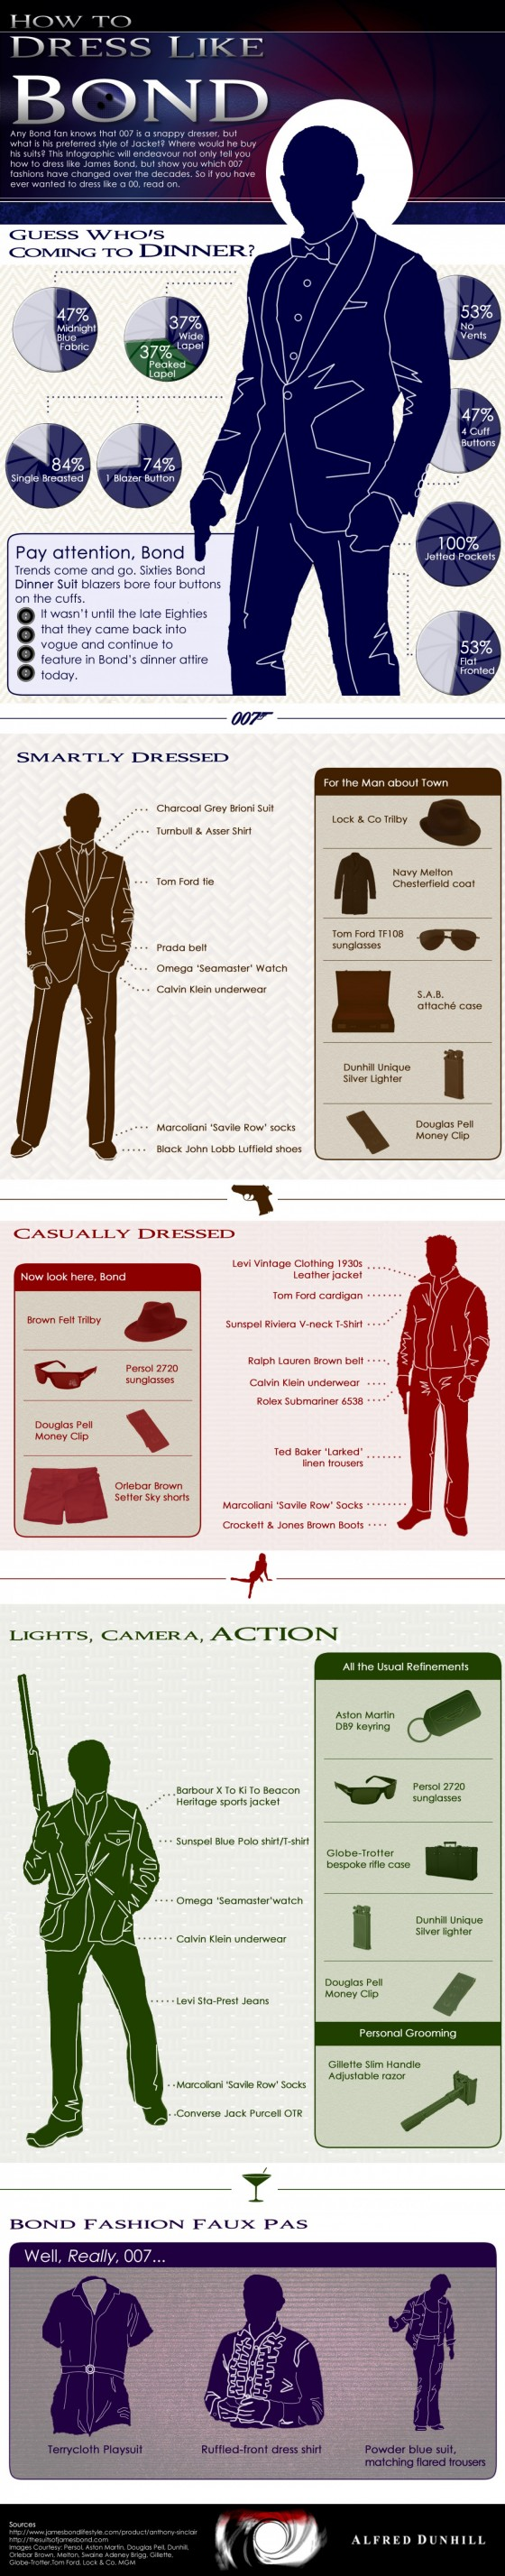 how to dress like james bond infographic 508a59148af3e w1500 560x2855